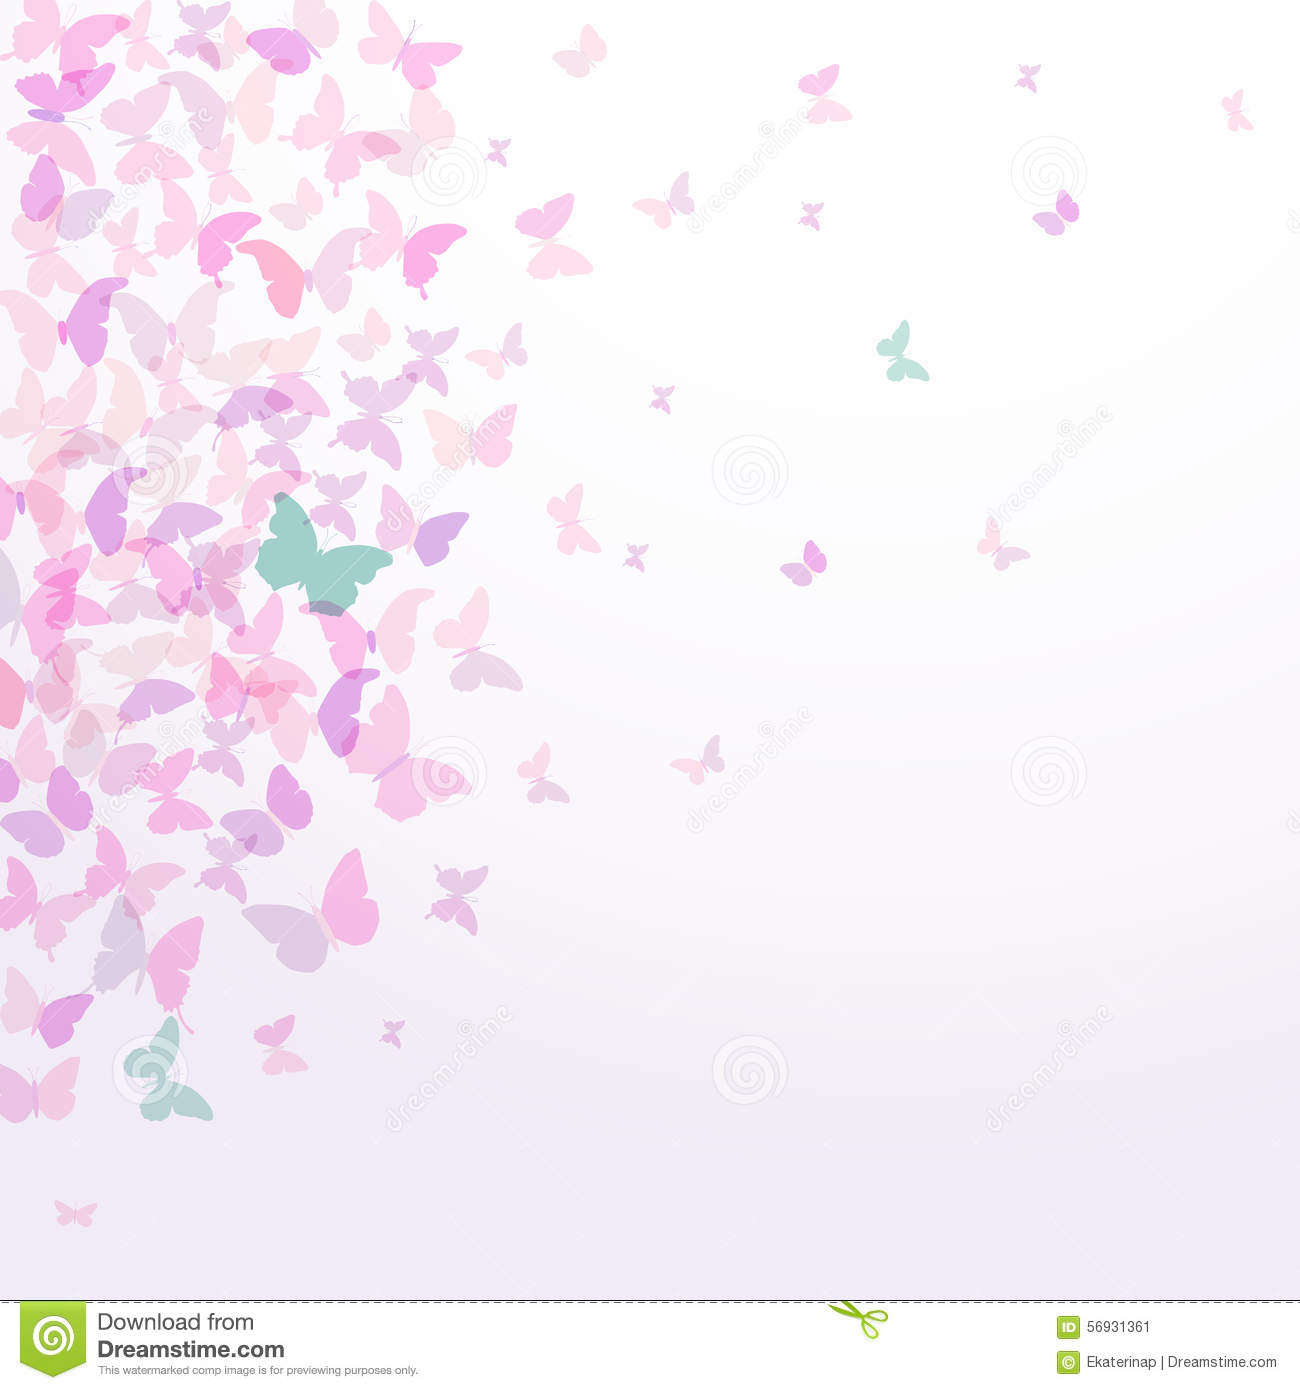 Pink vintage butterfly background - photo#25